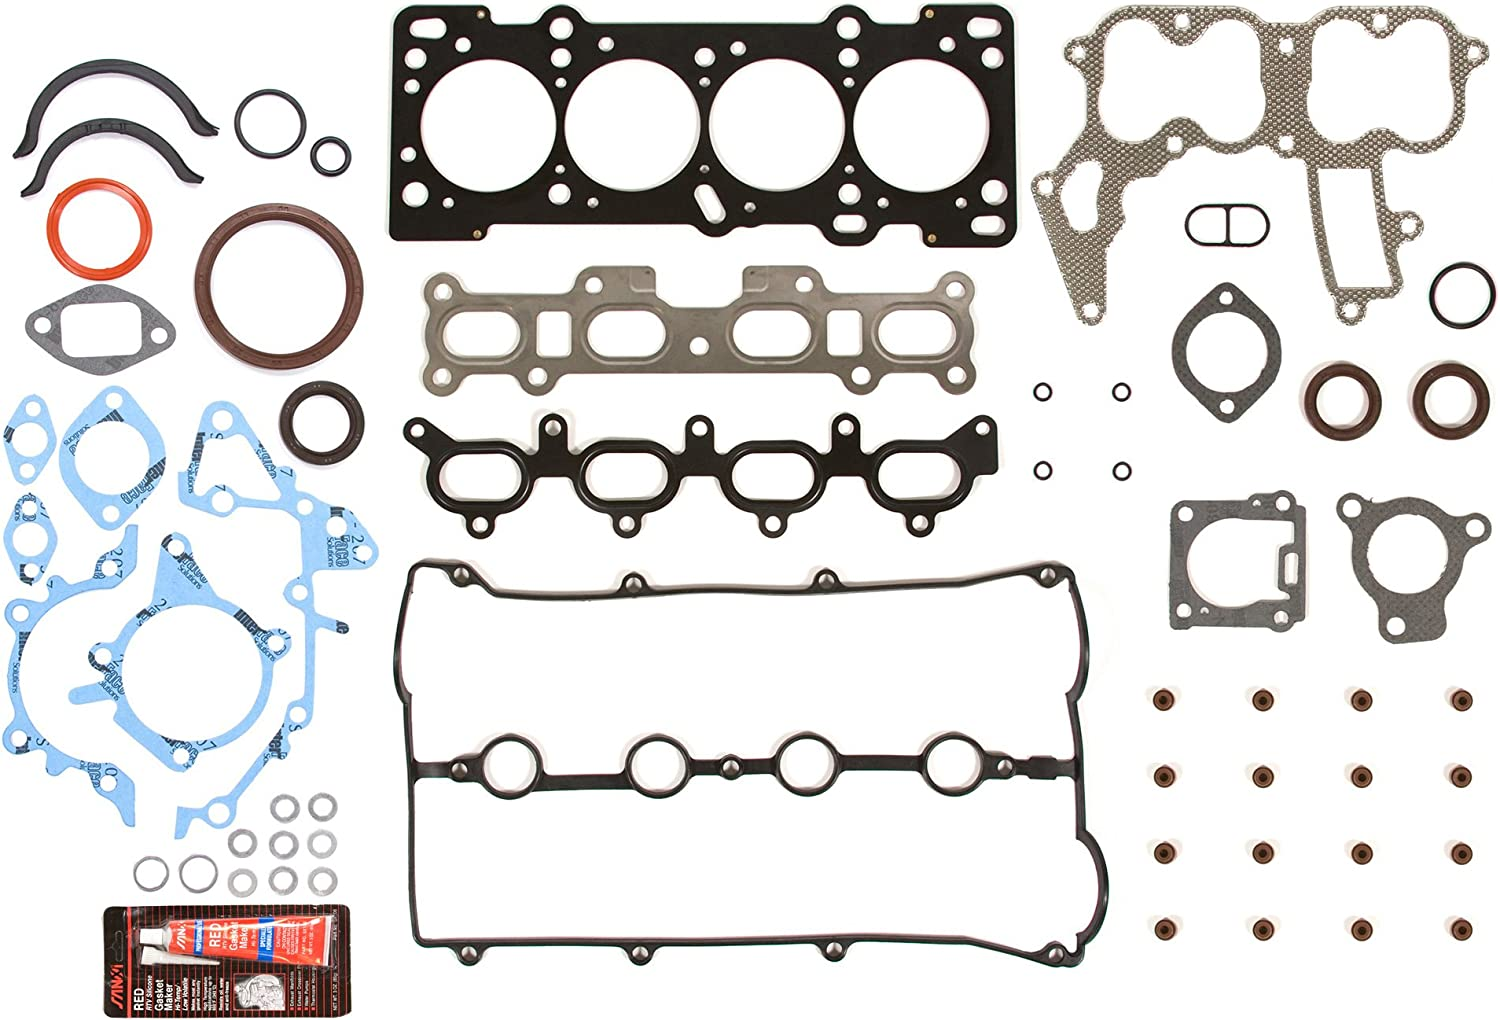 Evergreen OK6022L//2//1//1 Fits 94-98 Mazda Miata Protege 1.8 DOHC 16V BP Engine Rebuild Kit